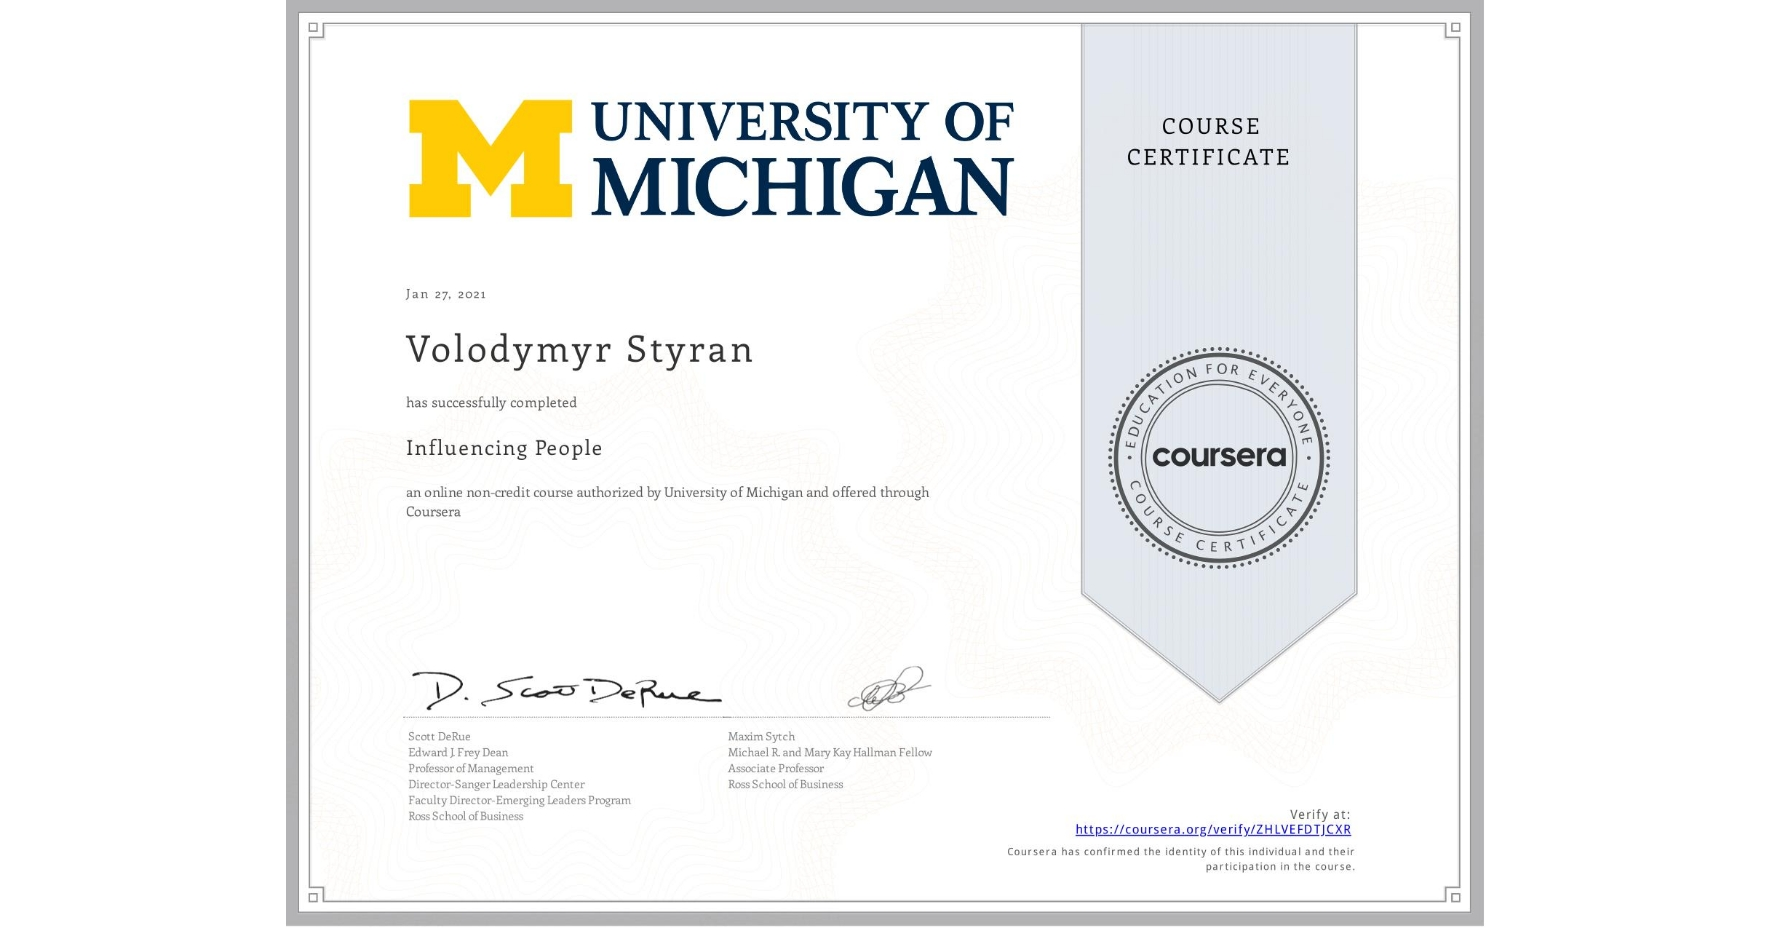 View certificate for Volodymyr Styran, Influencing People, an online non-credit course authorized by University of Michigan and offered through Coursera